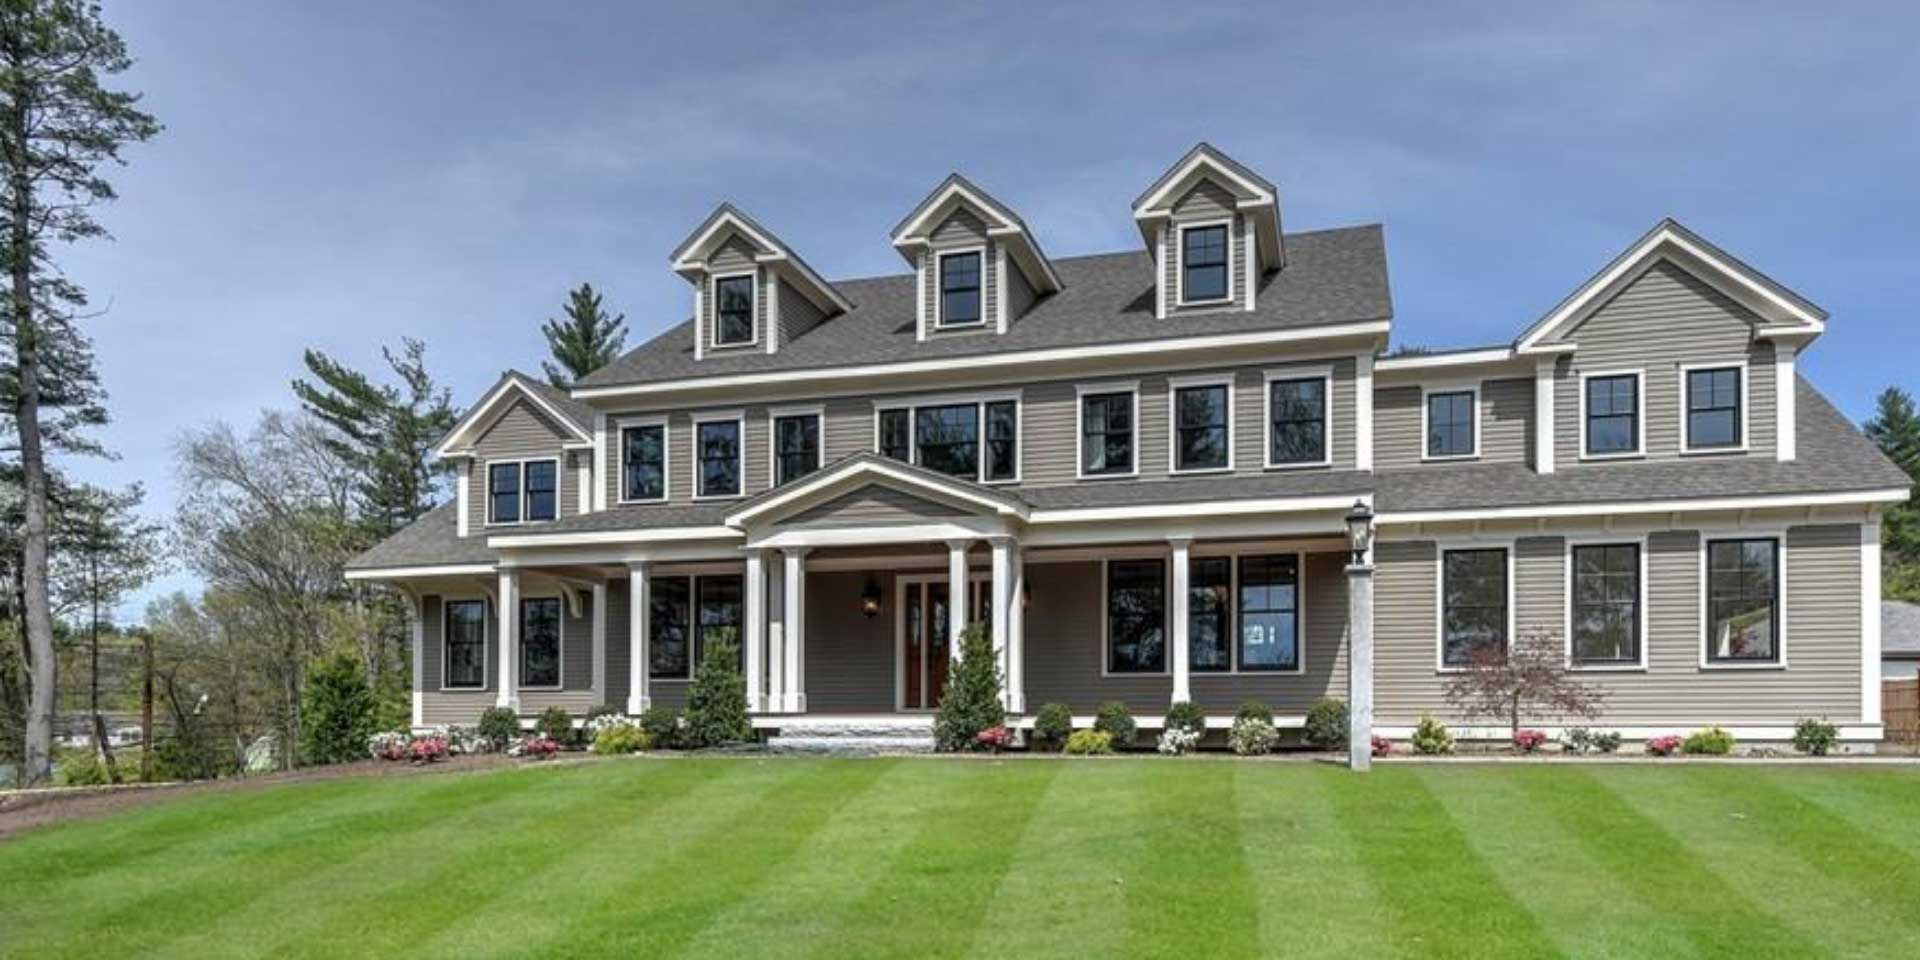 5-GloriaConviser-Esquire-Realtor-Needham-Newton-homepage.jpg